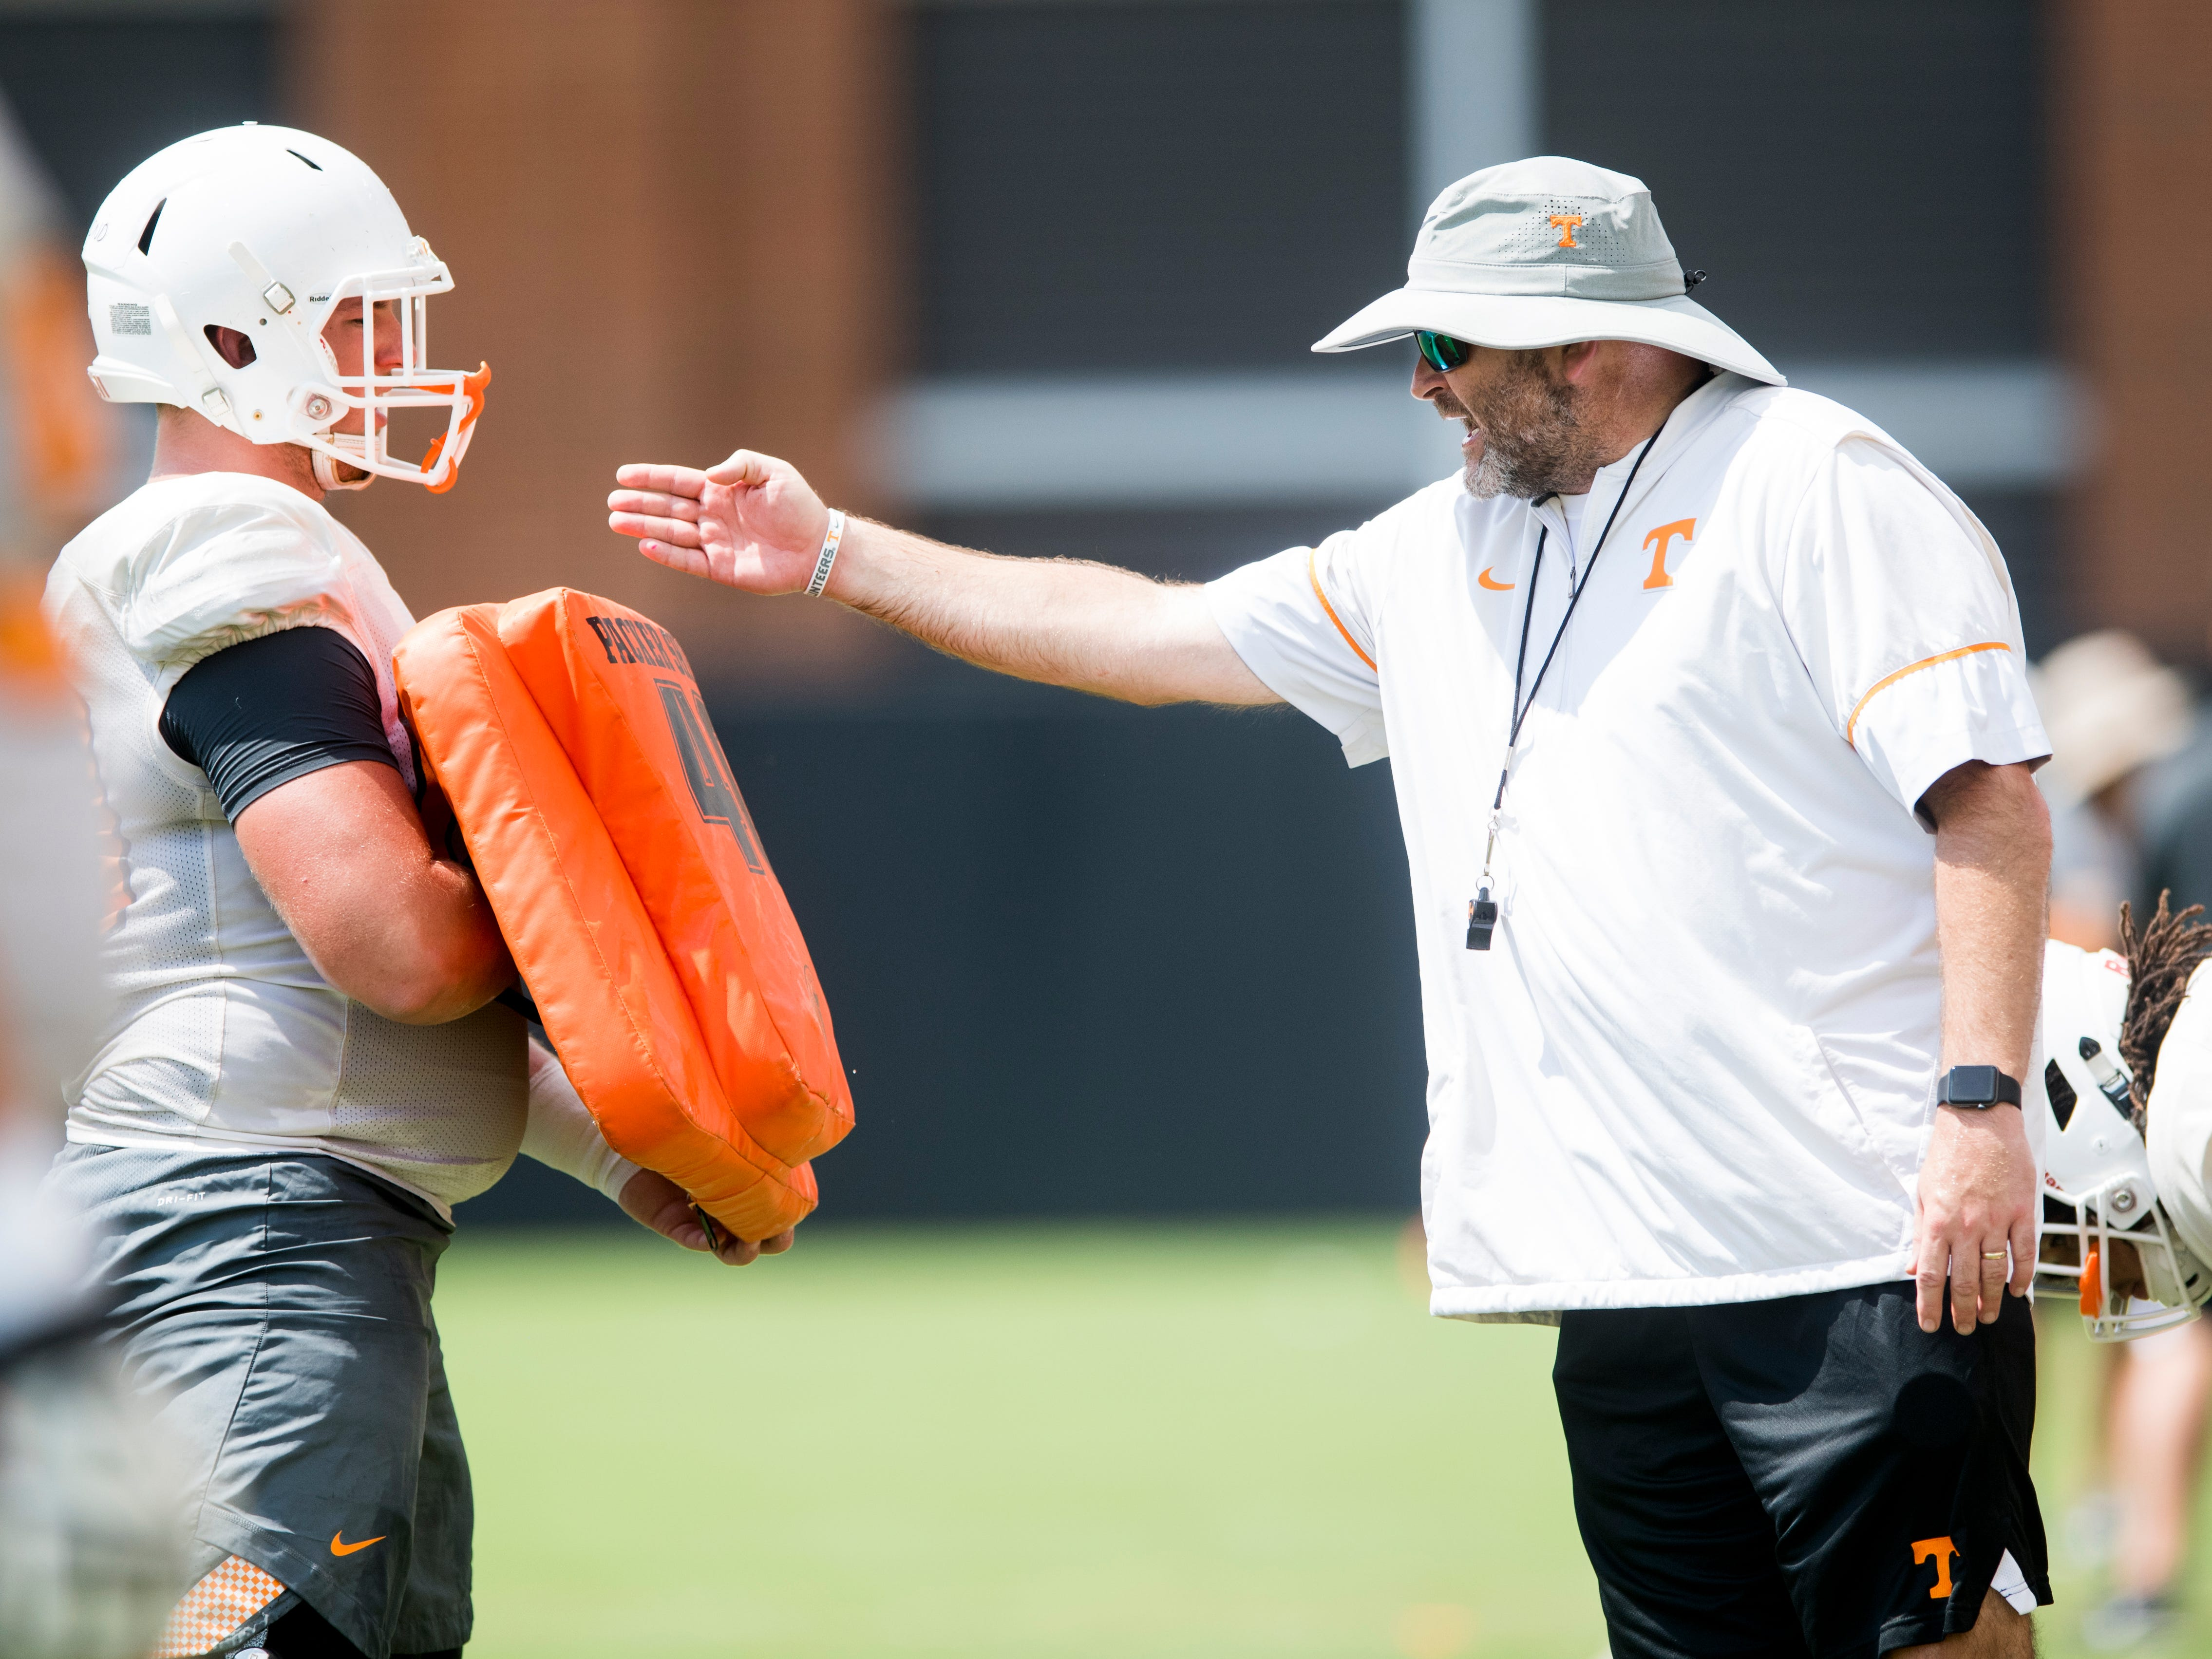 Tennessee offensive lineman coach Will Friend during afternoon football practice on the University of Tennessee's campus on Friday, August 17, 2018.